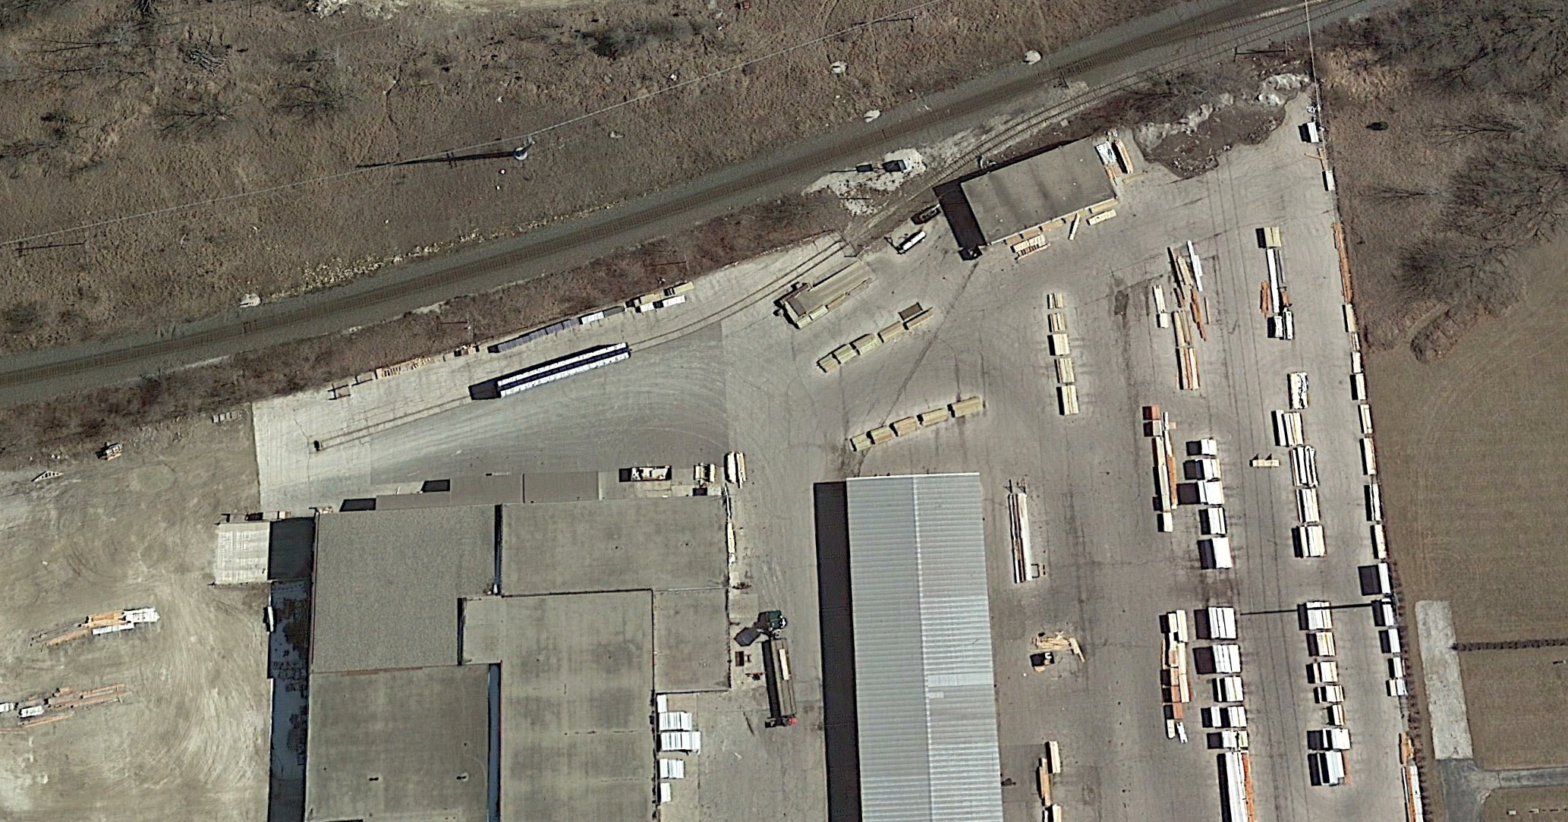 Google Maps Image of Wisconsin Building Supply in Sussex, WI